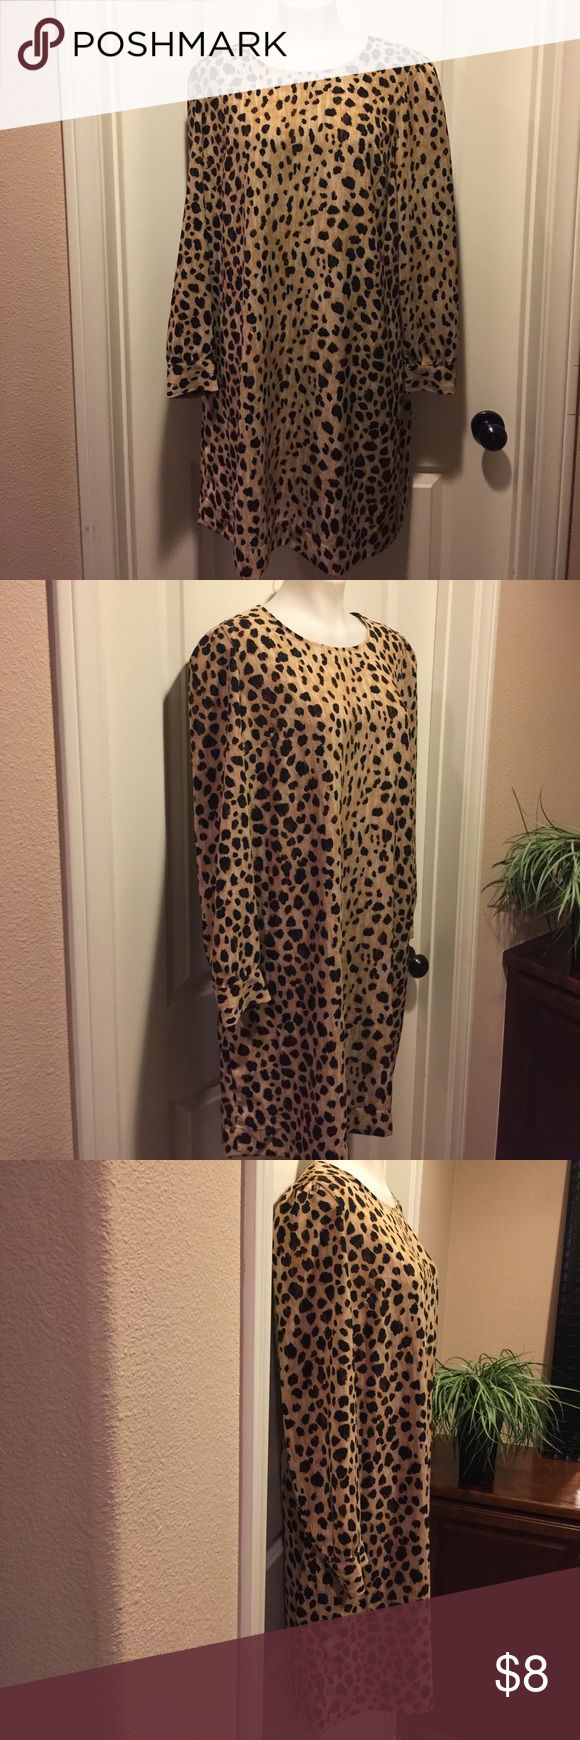 Cheetah Print Dress🌟 Cheetah Print Dress in excellent condition, shows no signs of wear, thanks for looking 😊 Merona Dresses Midi